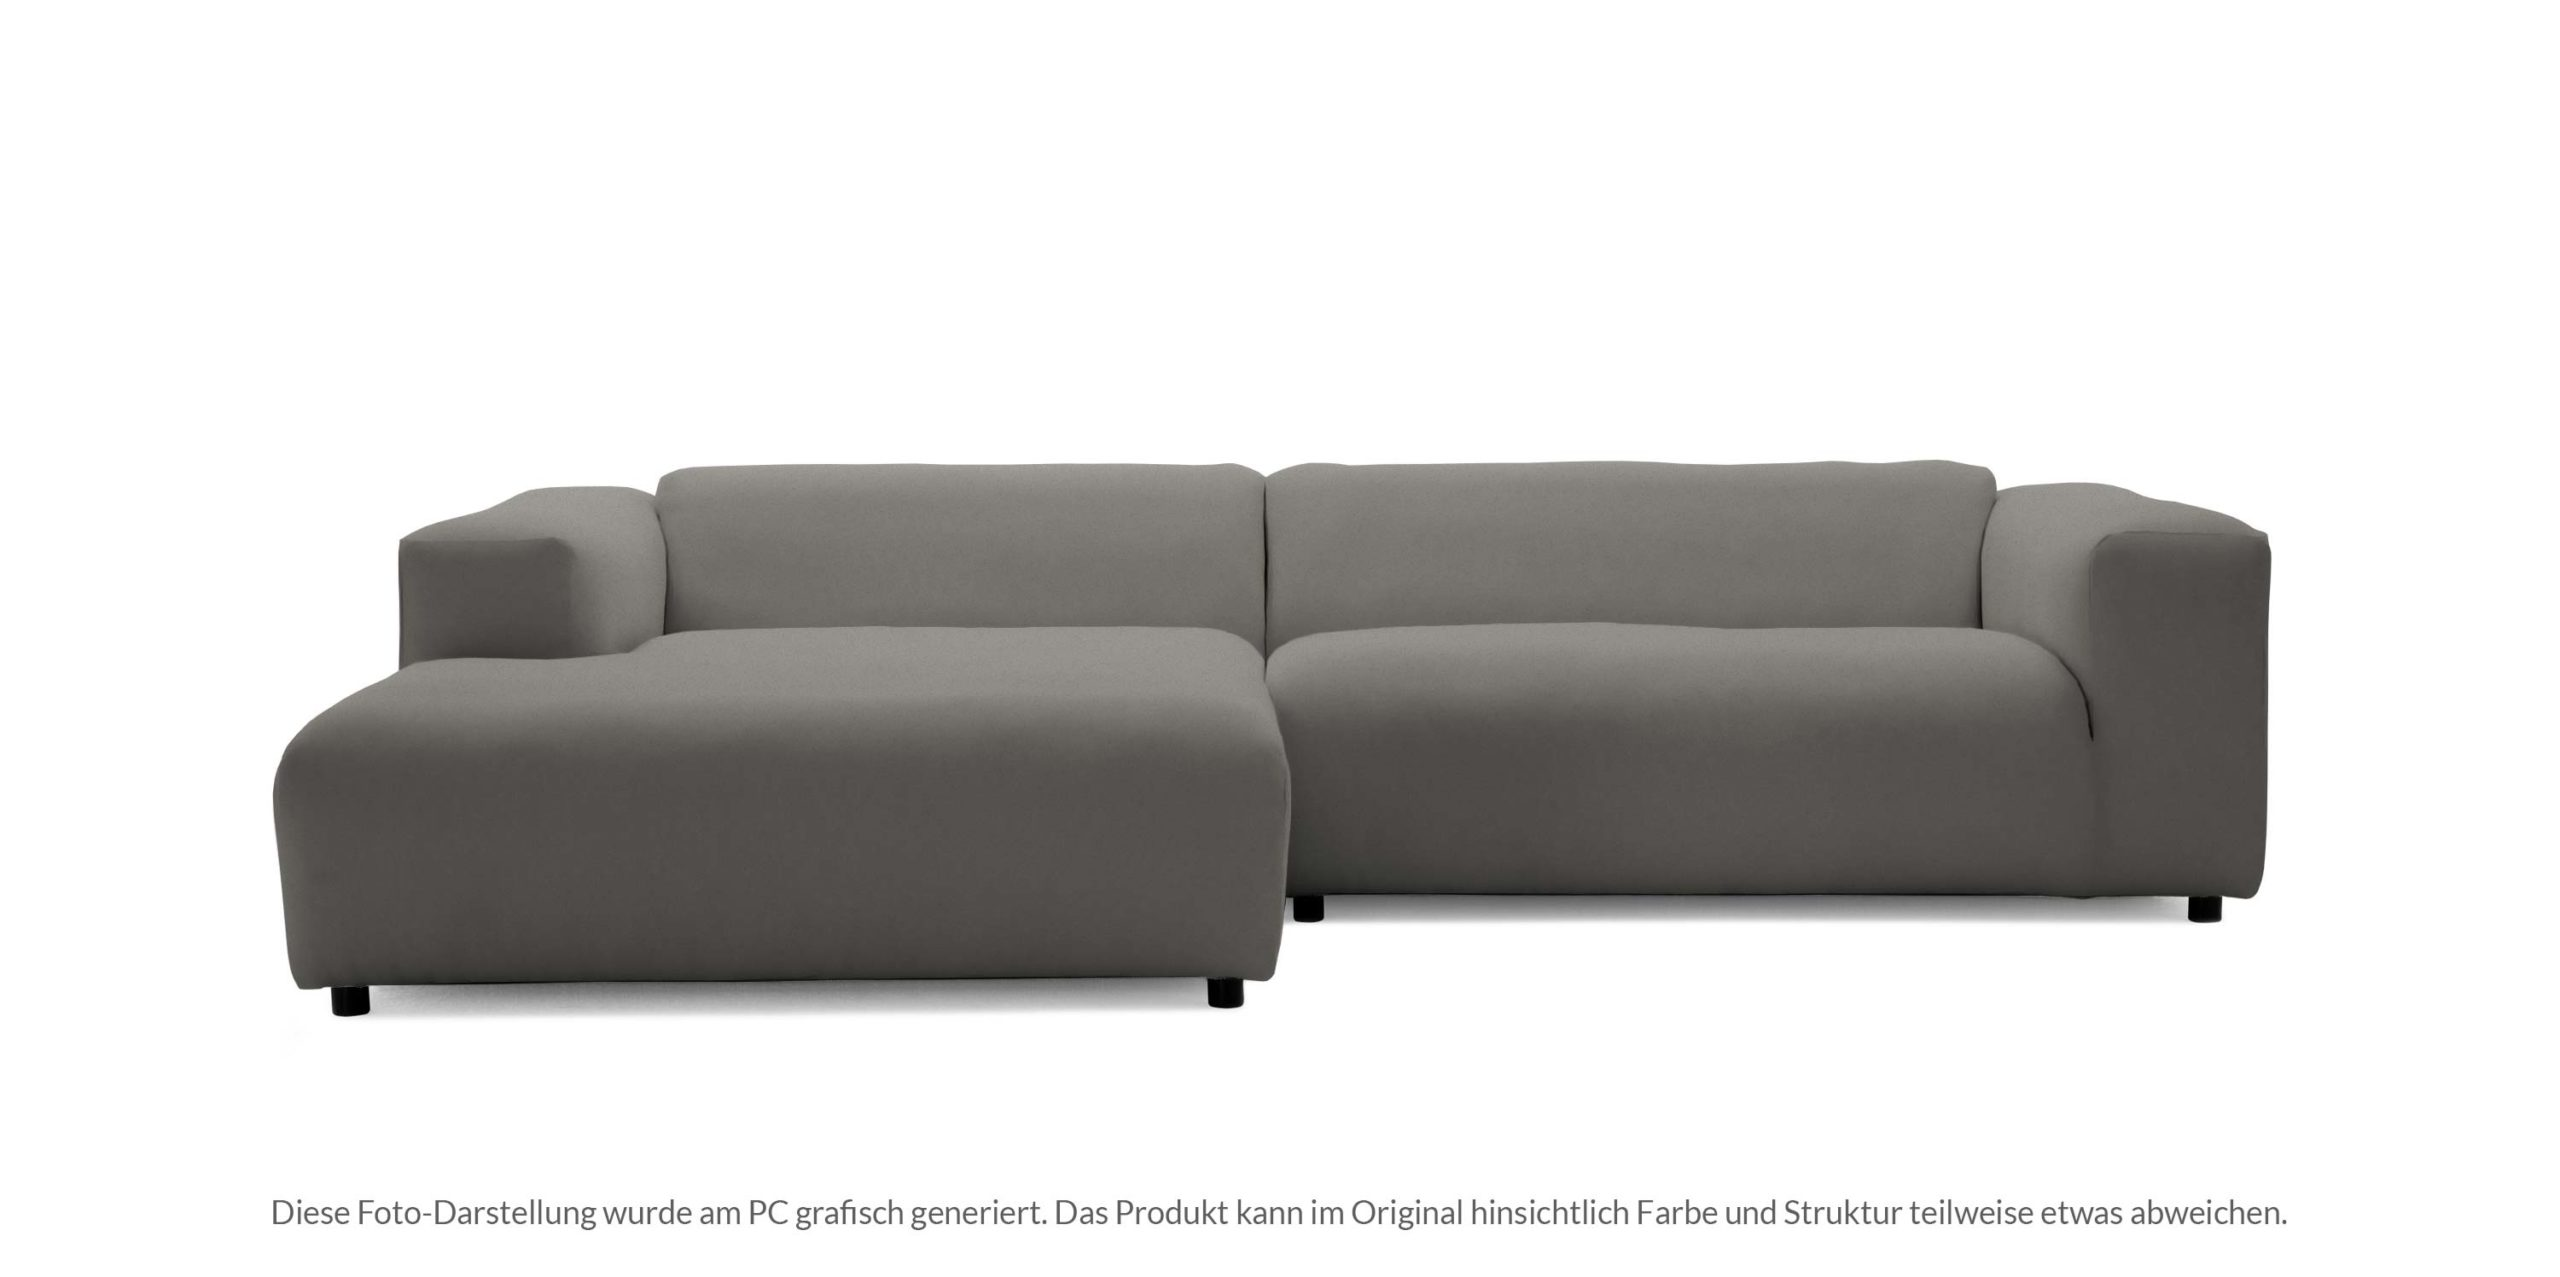 Sofa Online Konfigurieren Freistil 187 Lounge-sofa Mit Longchair Konfigurieren. Top